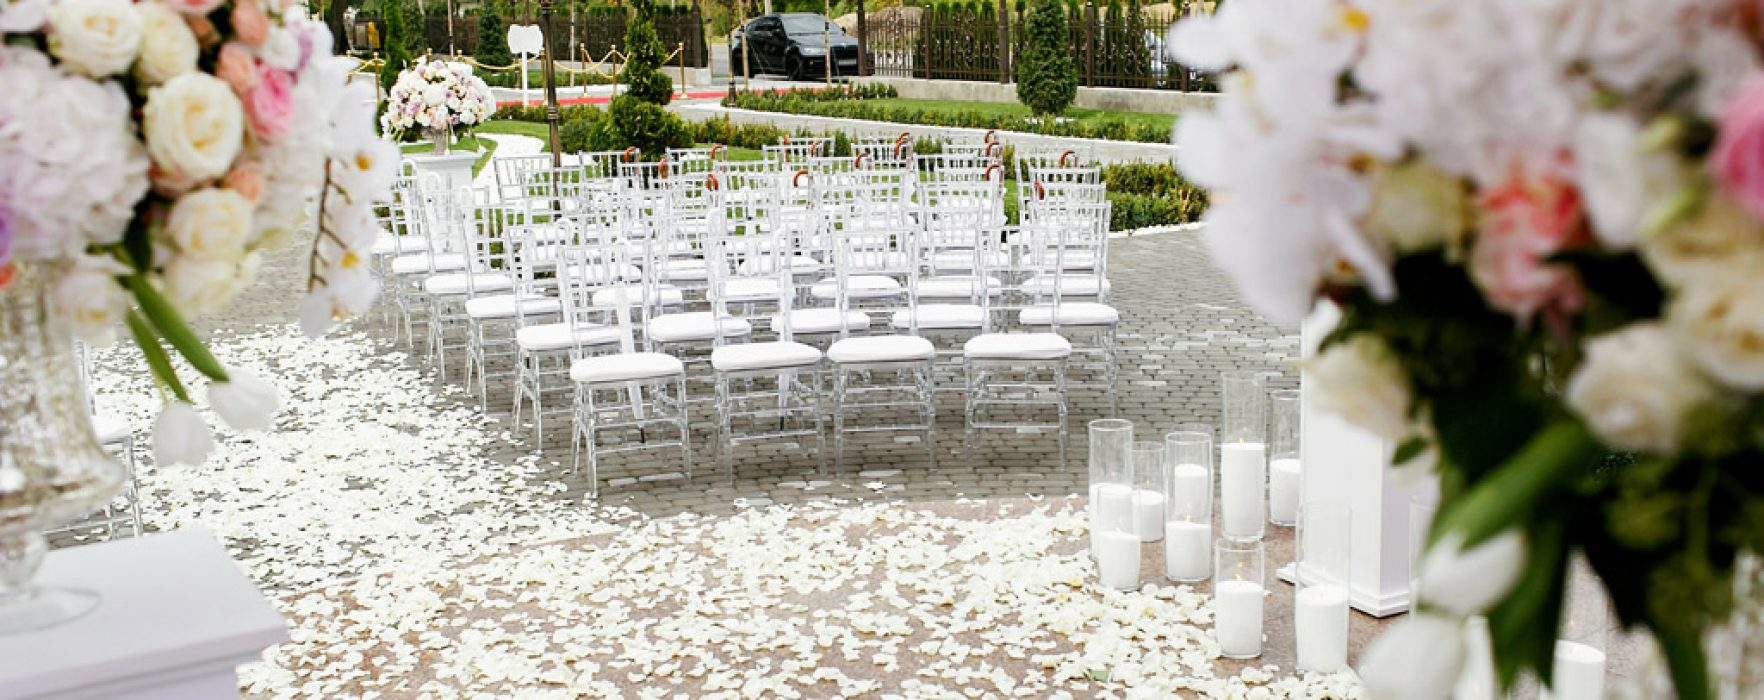 how to host a wedding in your backyard better homes and gardens